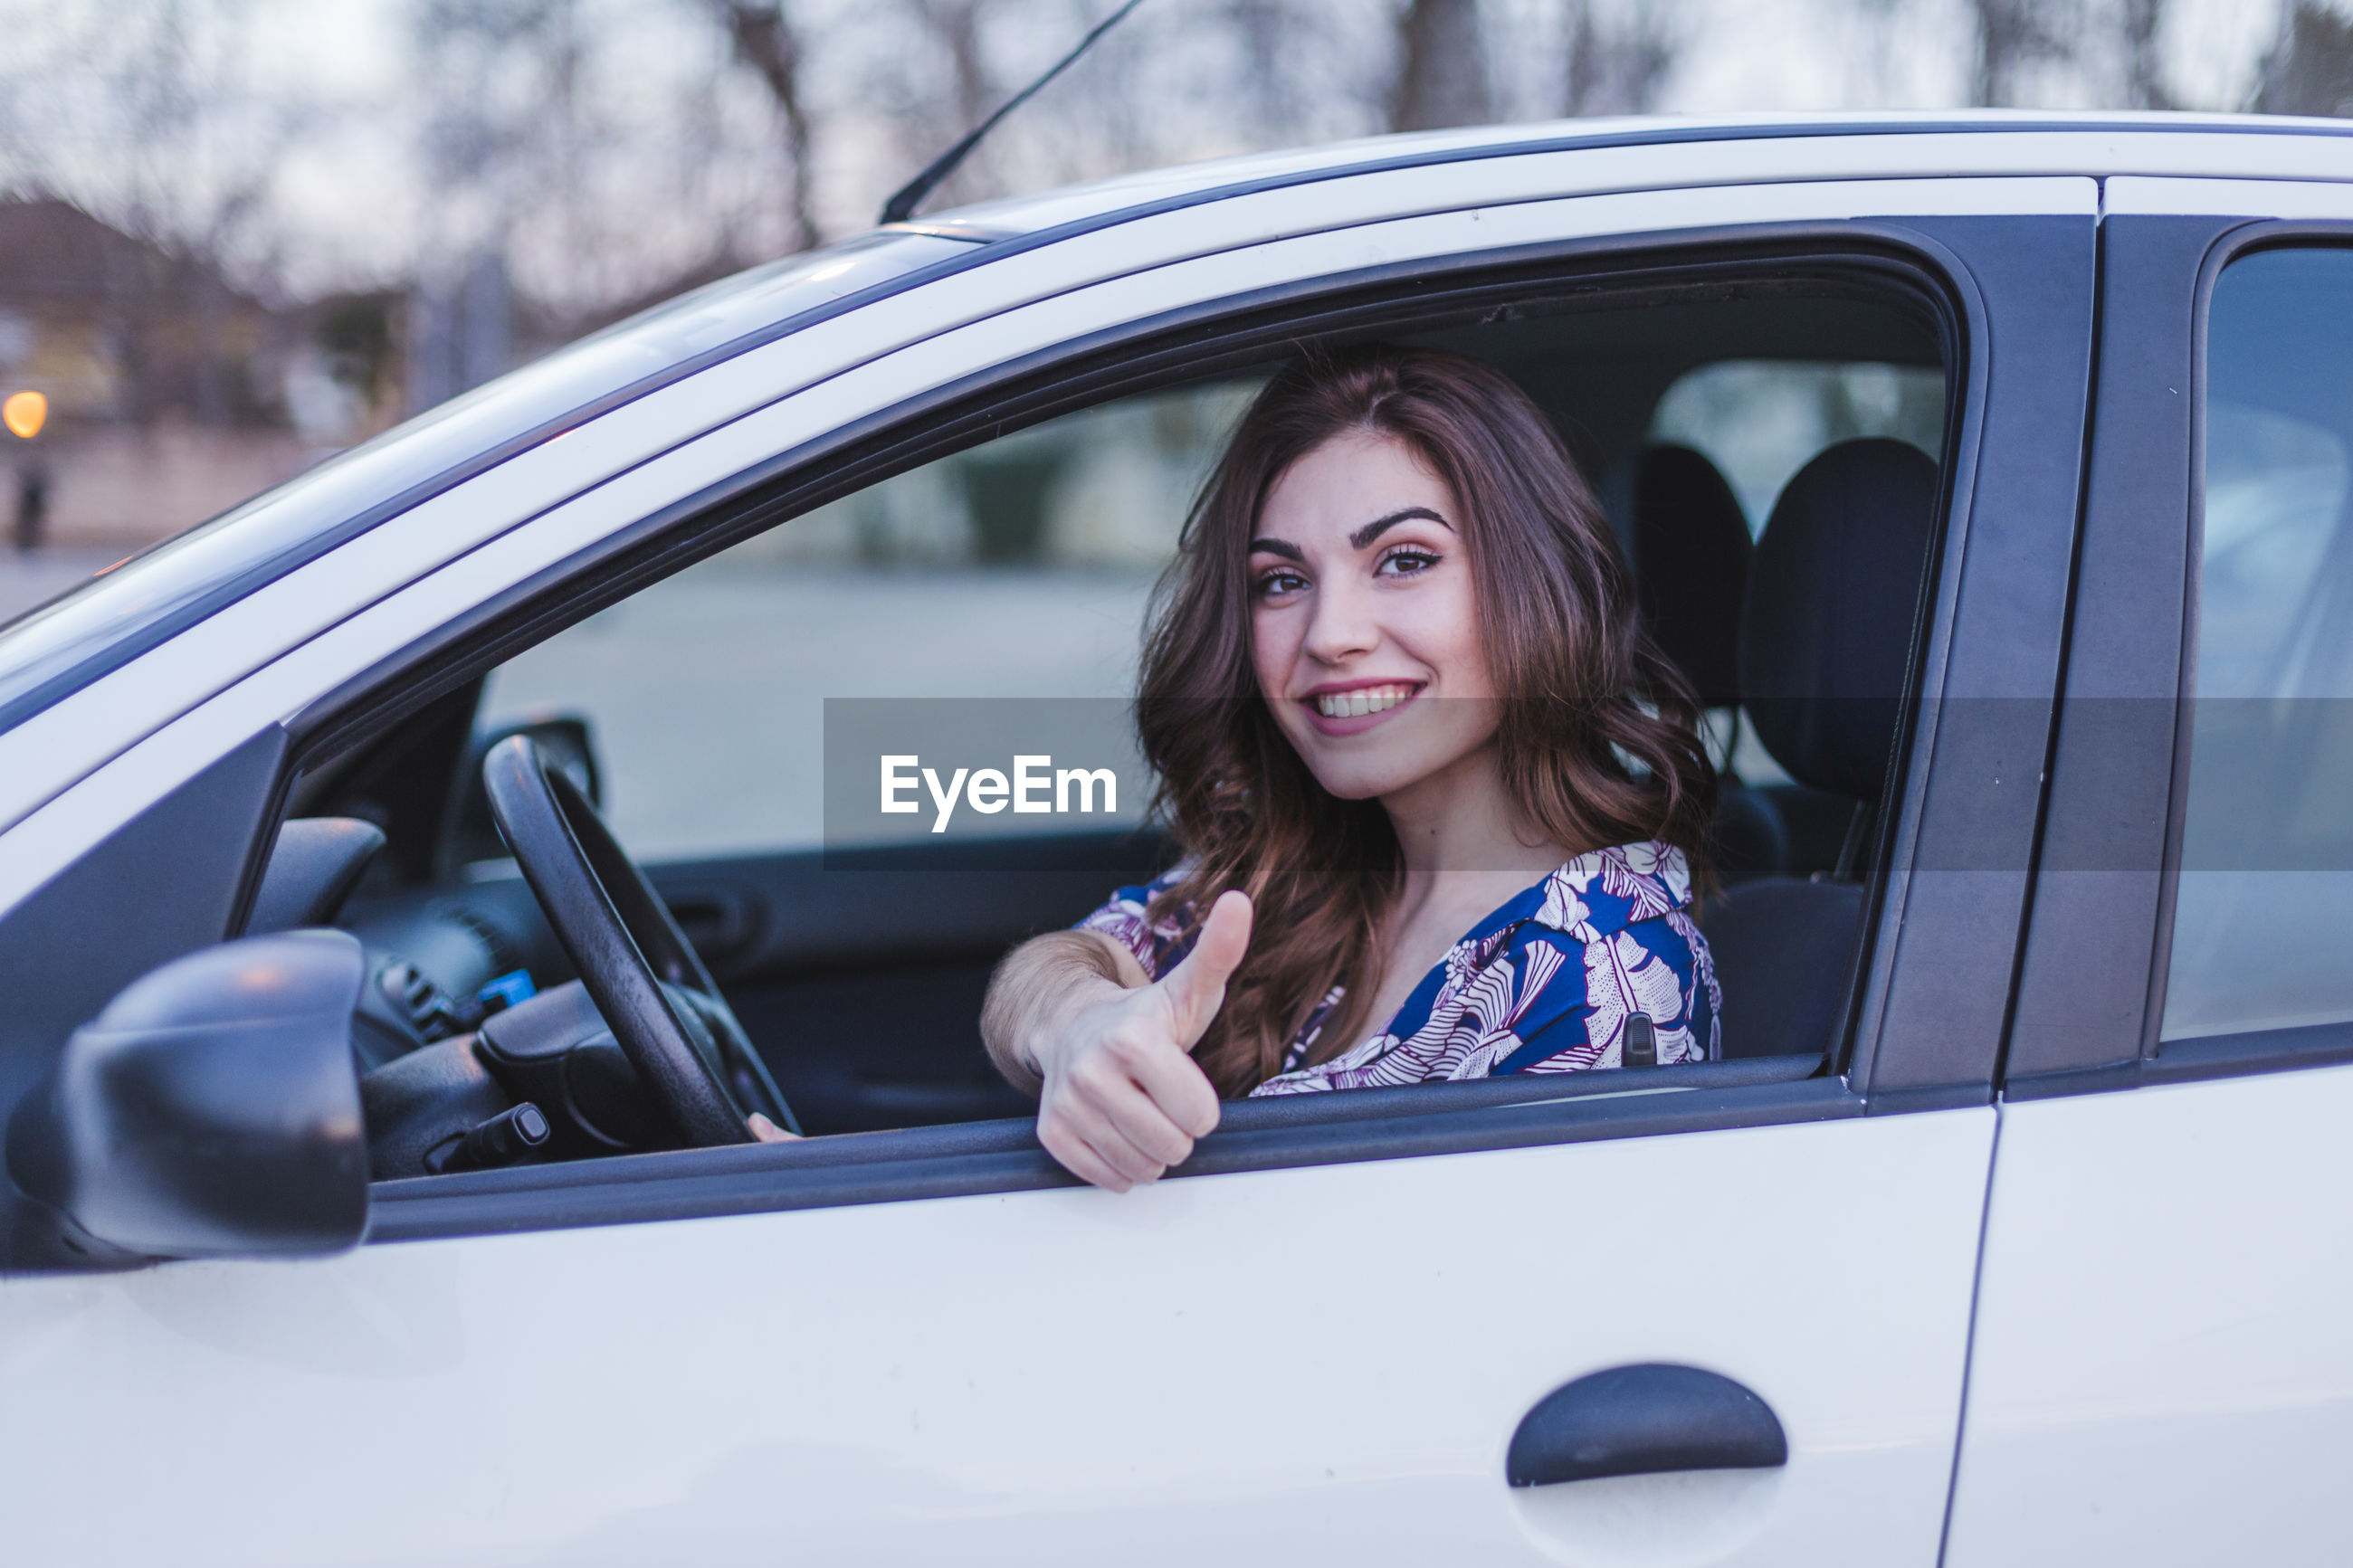 Portrait of young woman gesturing thumbs up sign in car